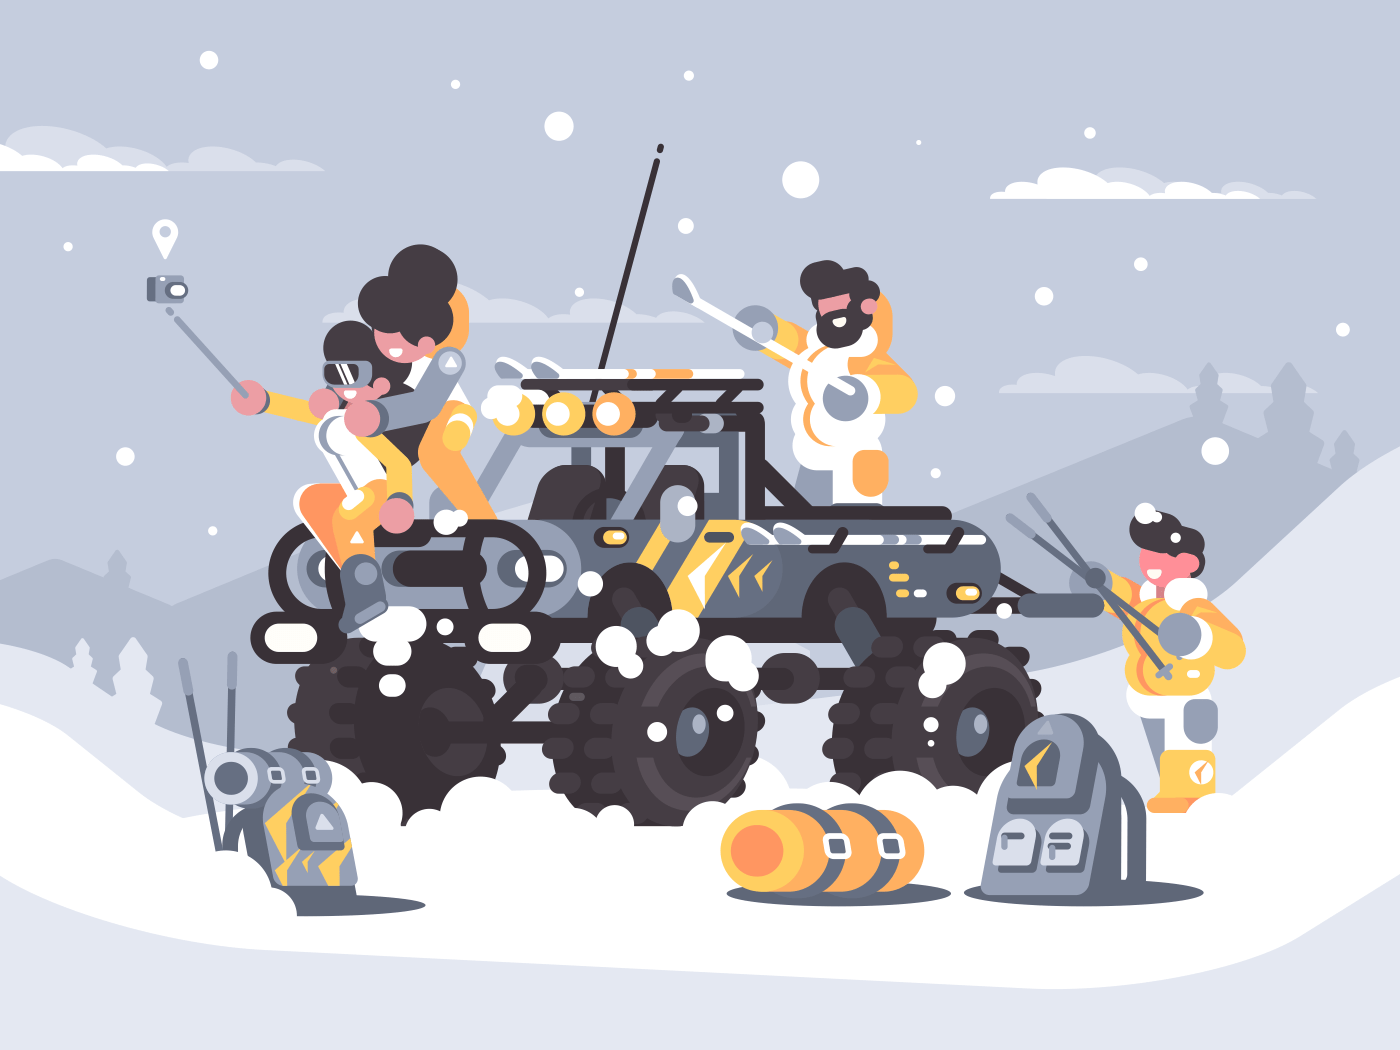 Friends rest in winter in mountains on off-road car. Vector illustration